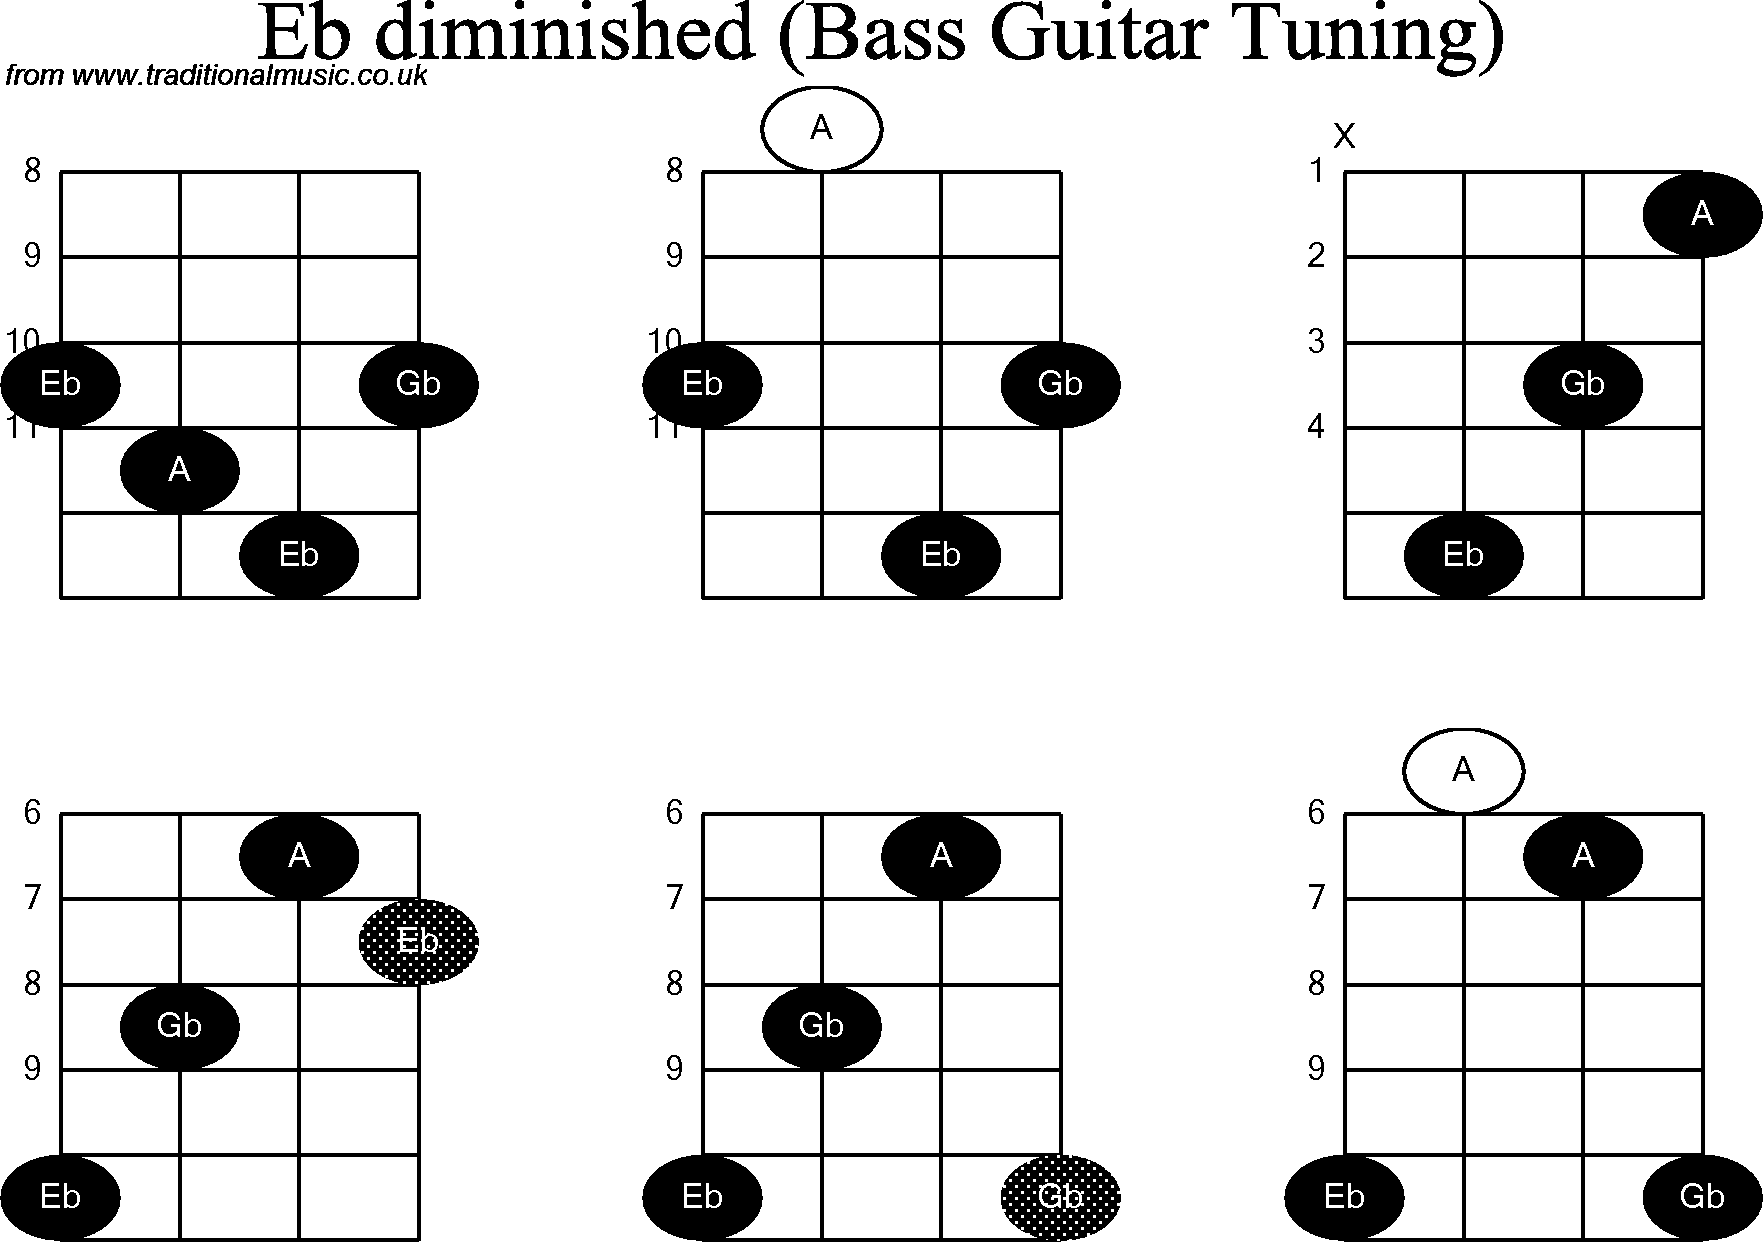 Bass Guitar Chord Diagrams For Eb Diminished